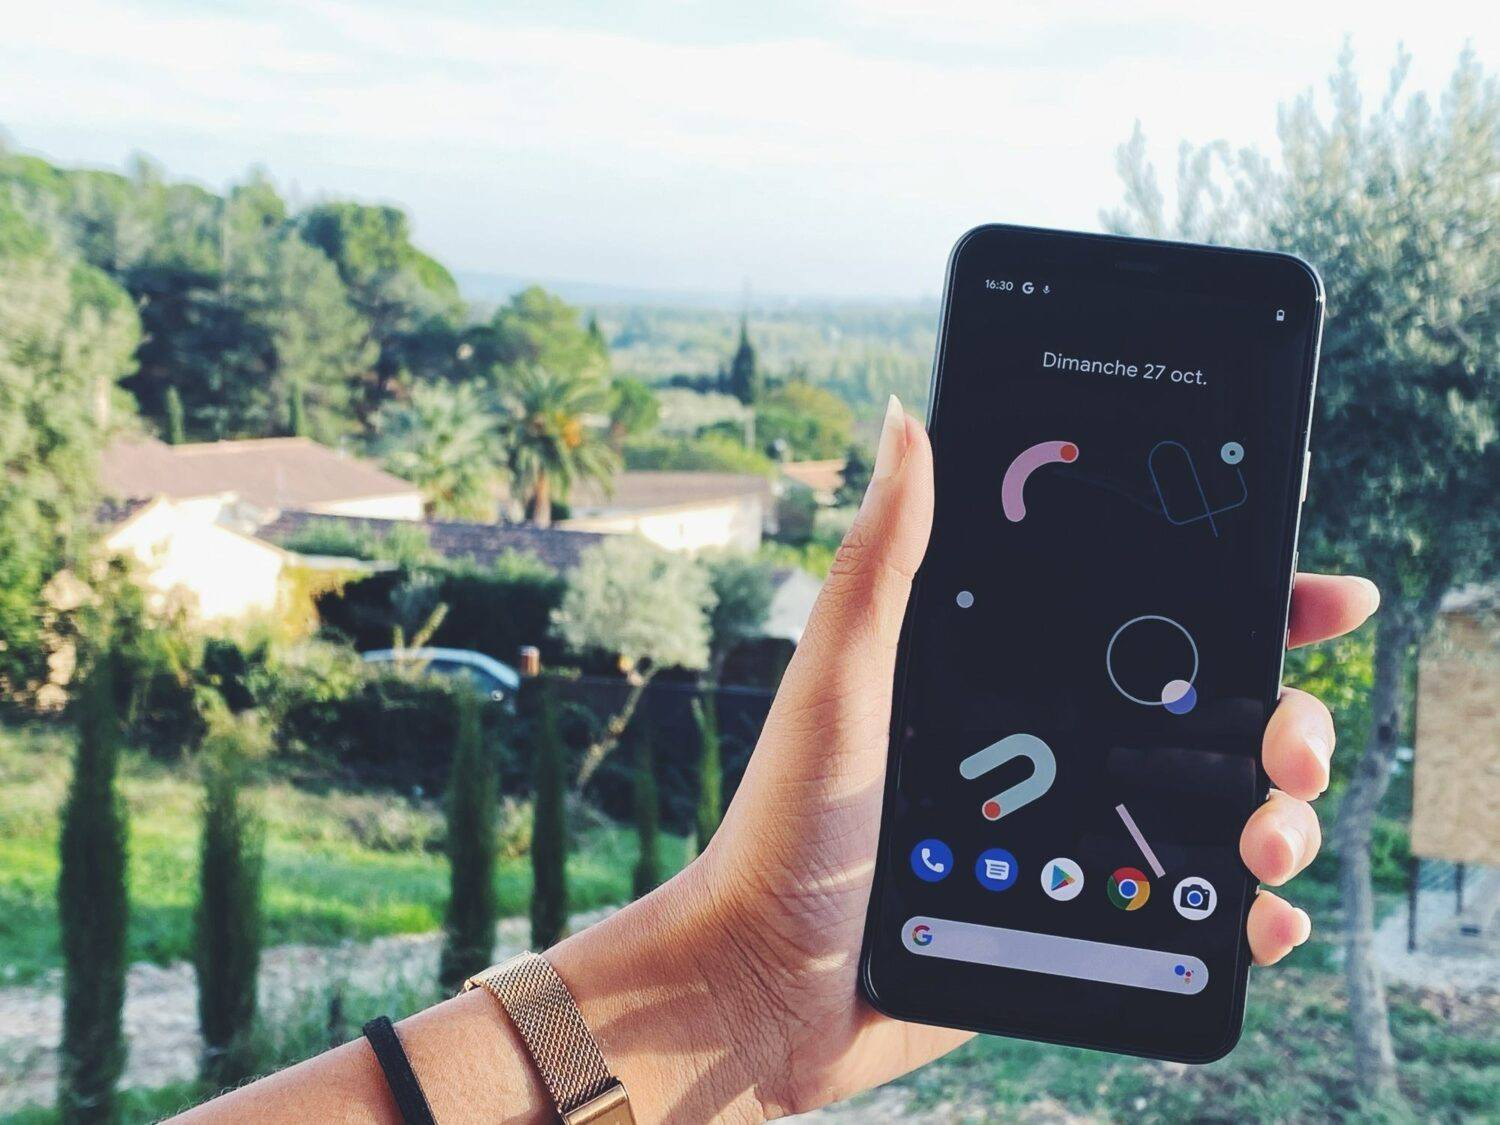 Google Pixel 4 XL screen on display